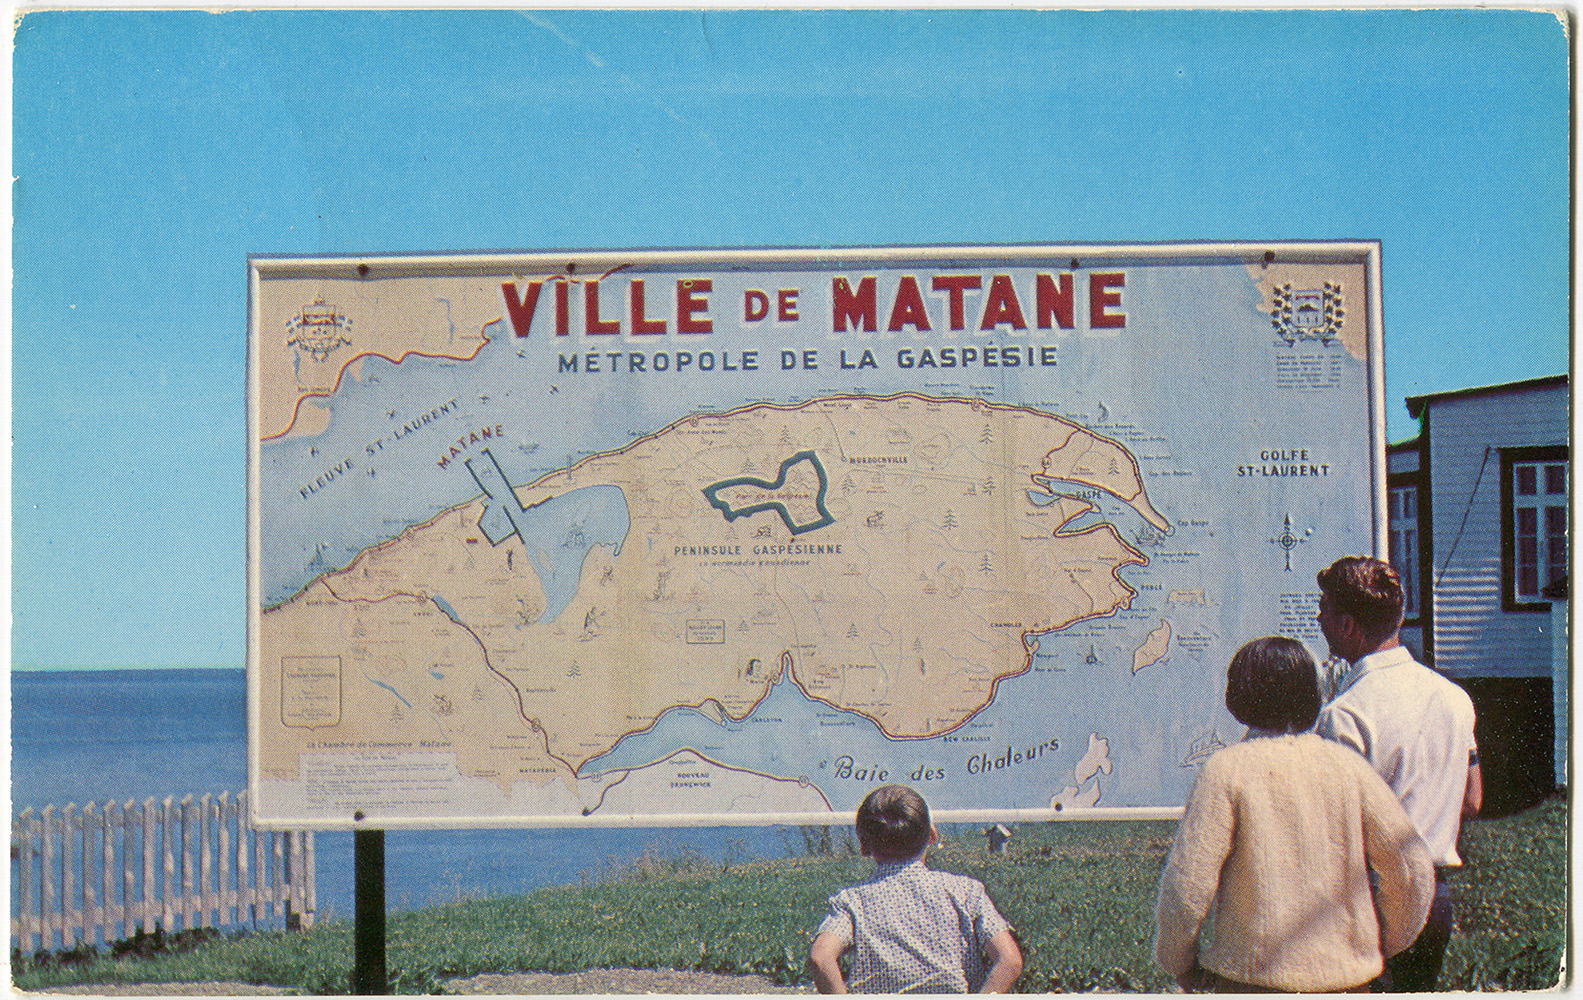 A man, a woman and a child observe a map of the Gaspésie. The map is approximately 4 feet high by 8 feet wide. Located outdoors near the Matane lighthouse, it reads: Ville de Matane 'Métropole de la Gaspésie.